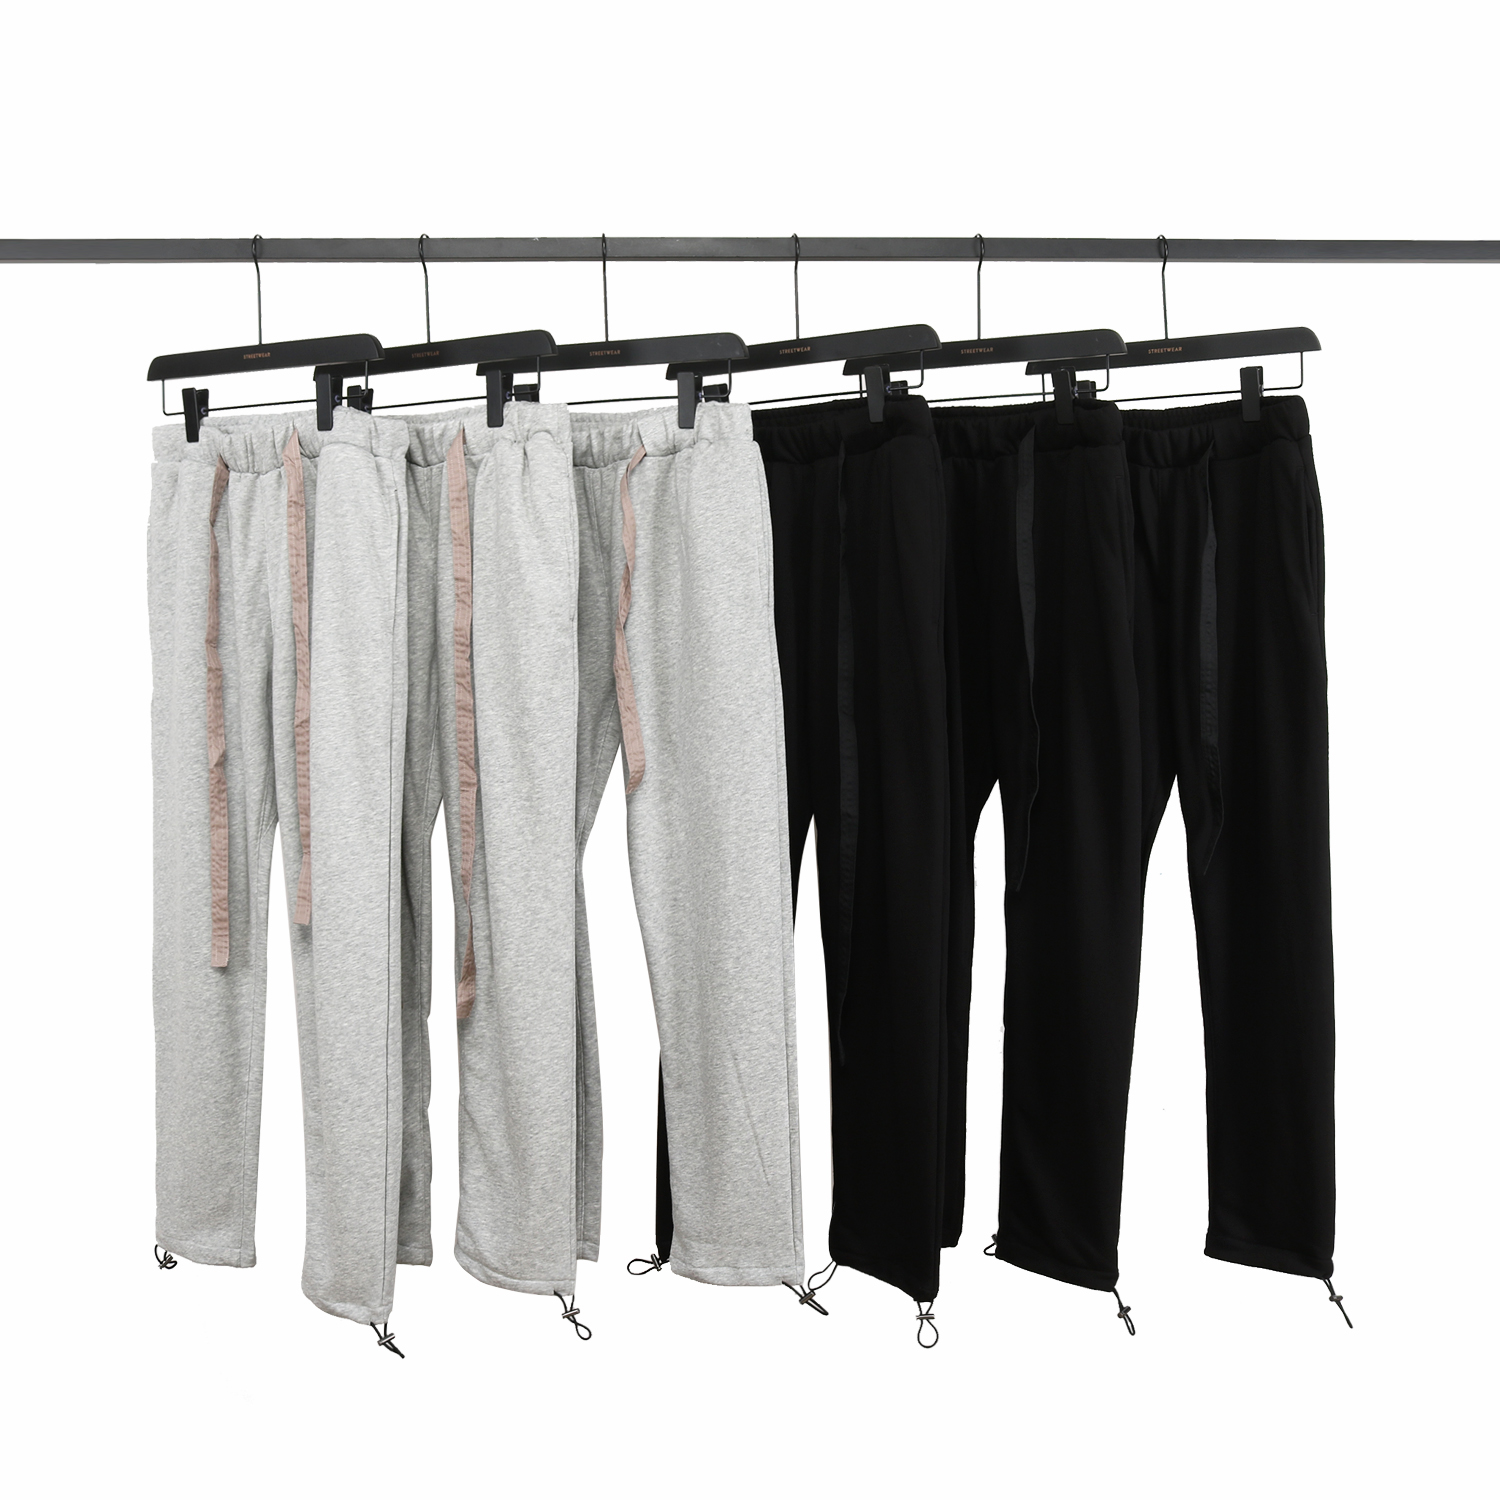 2019 Kanye West Hip Hop Style Full Length Jogging Pants Sweatpants For Men Ribbon Mens Streetwear SweatPants